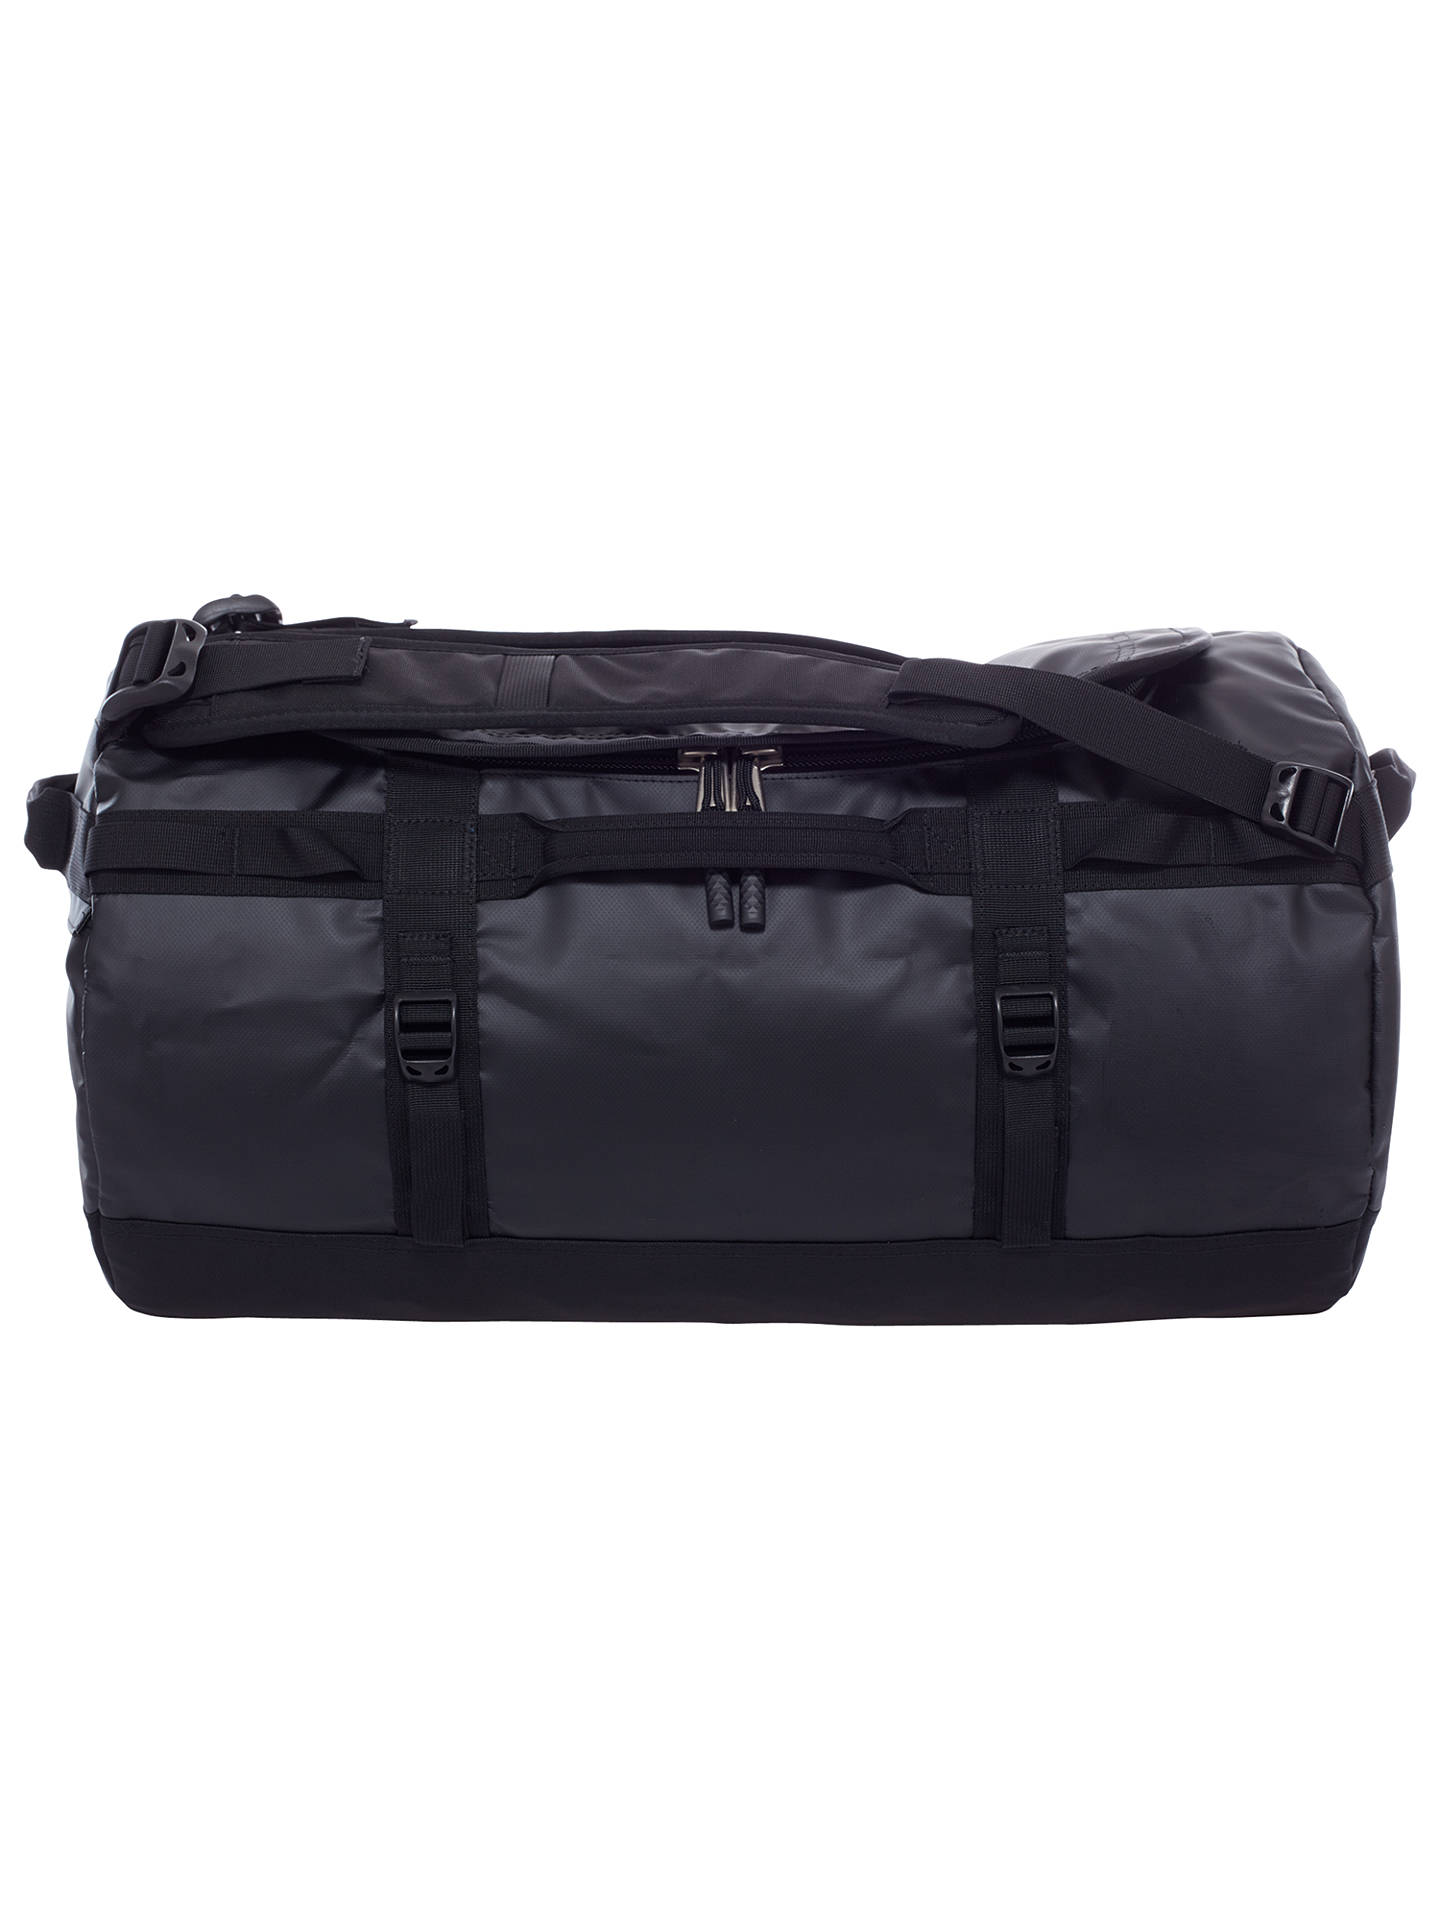 The North Face Base Camp Duffle Bag Small Black Online At Johnlewis